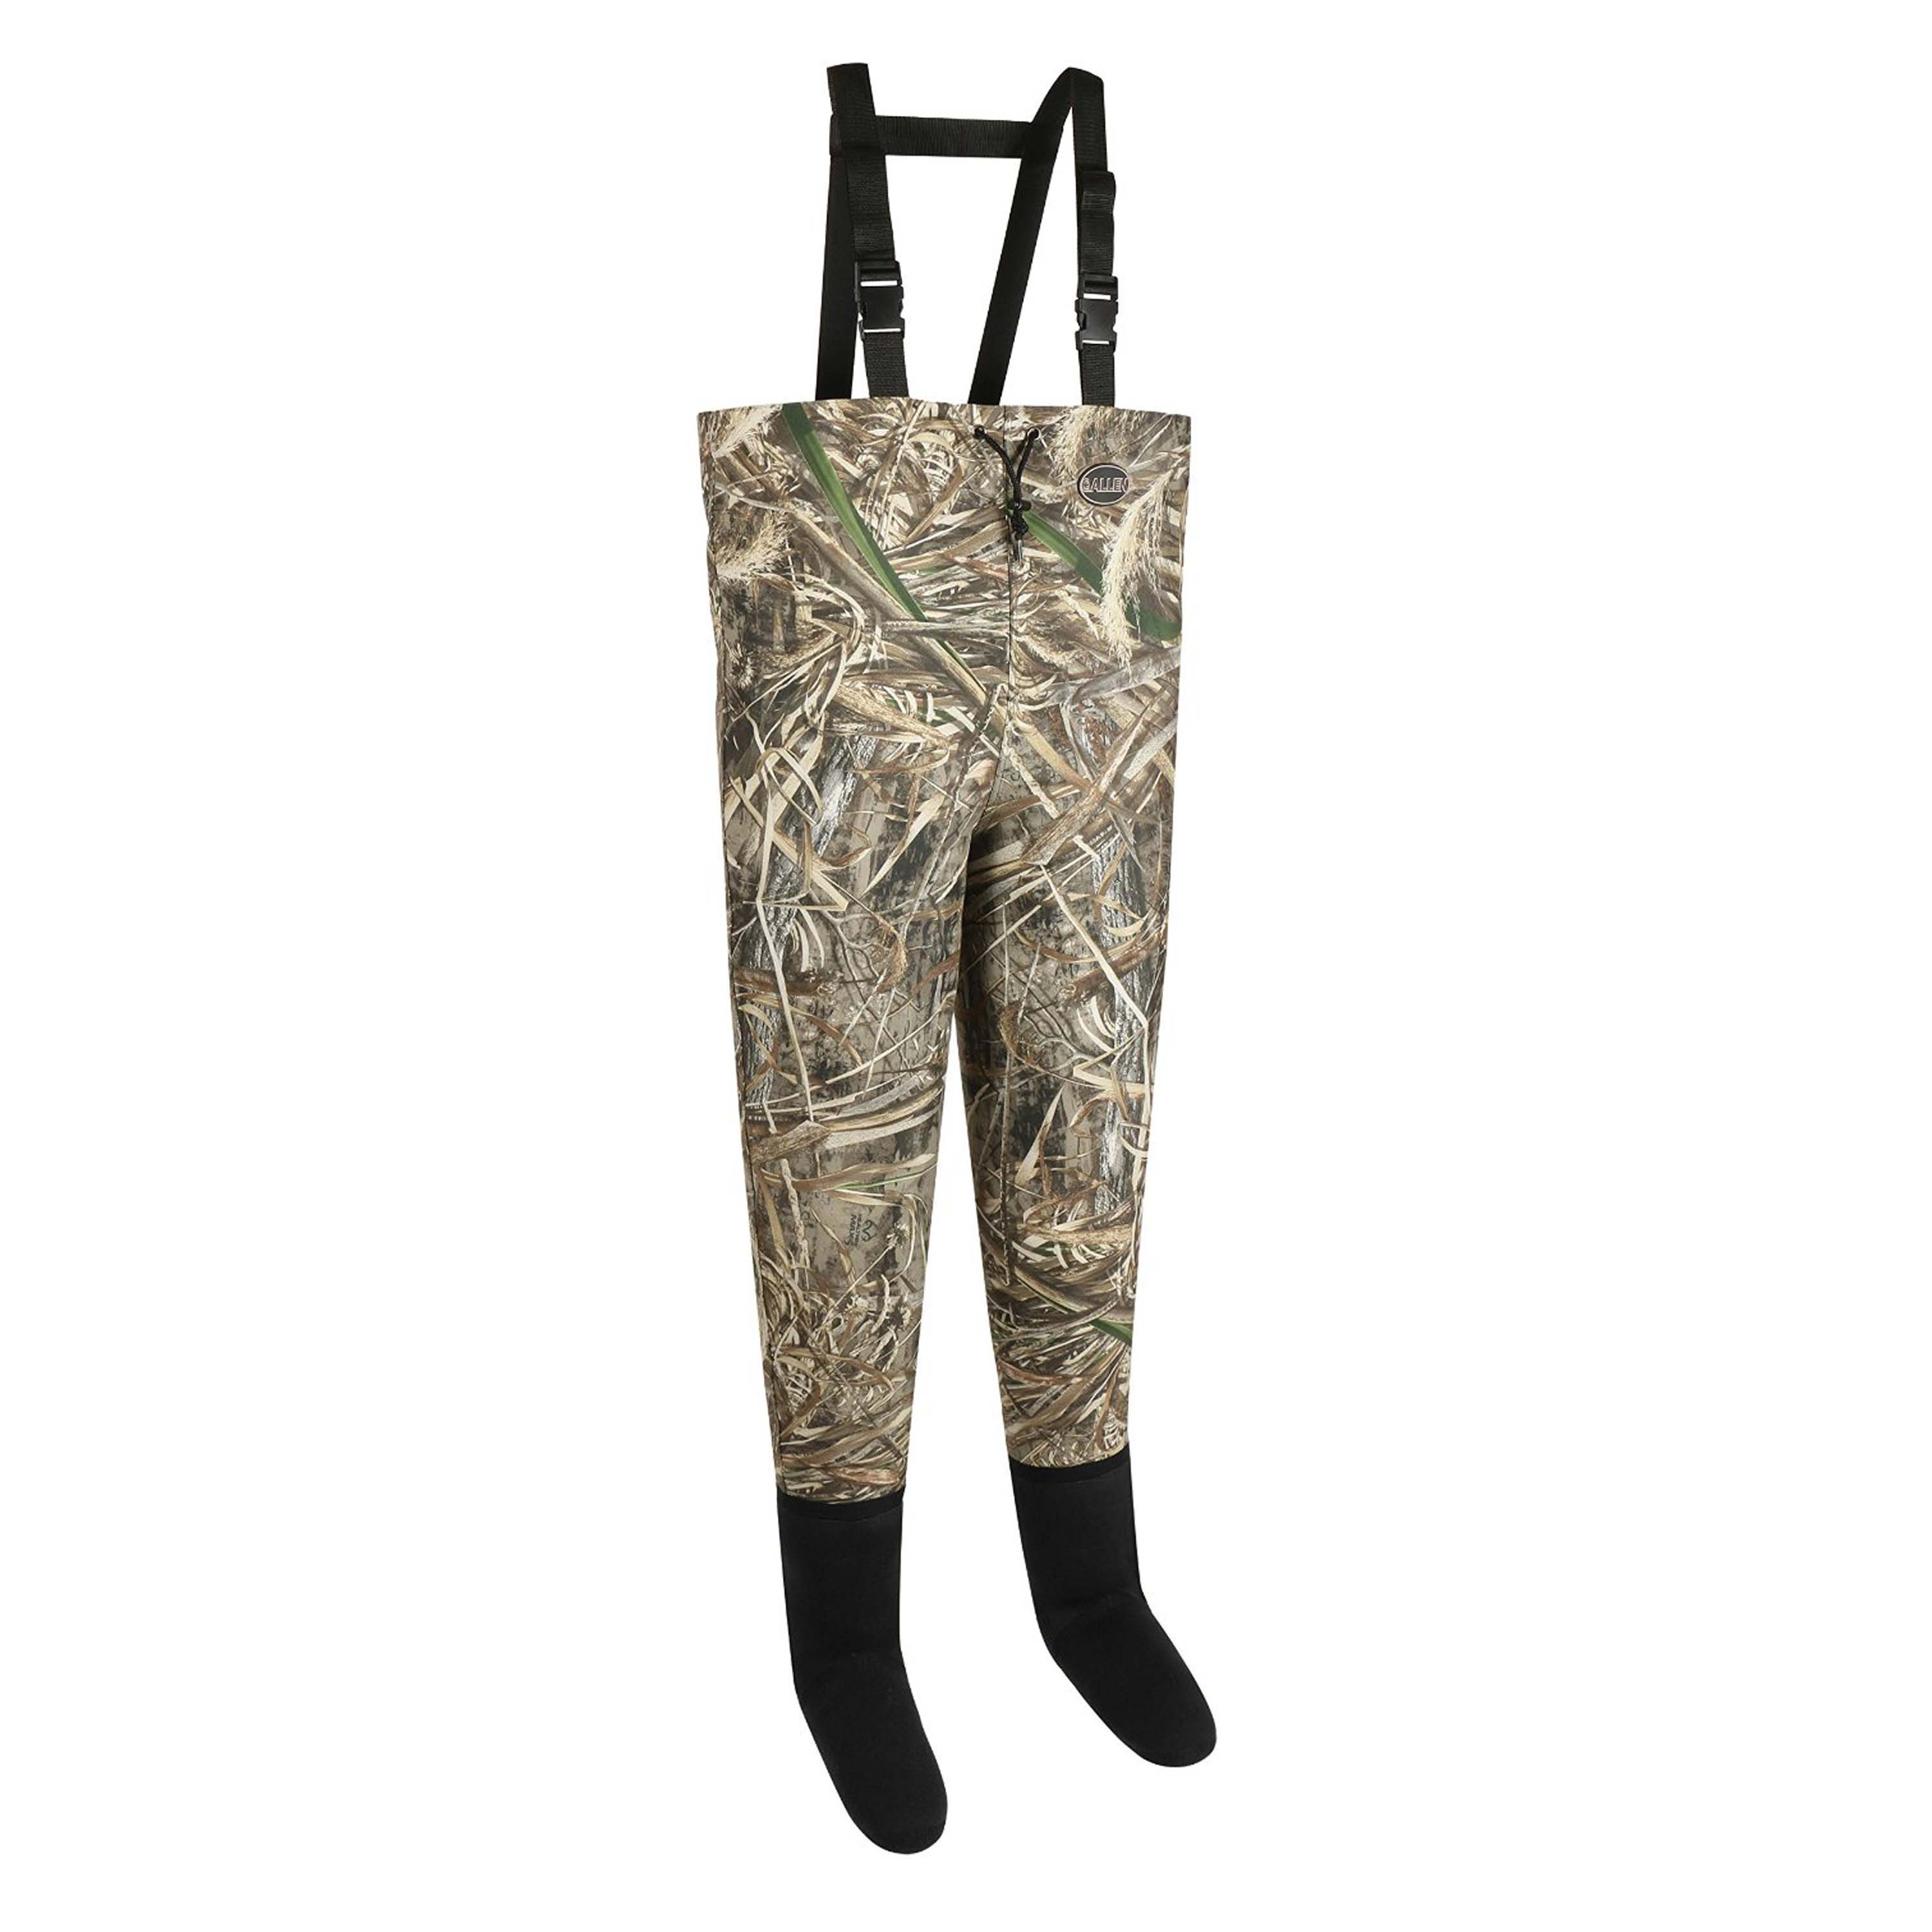 Carry Bag Total Camo Wader Cover